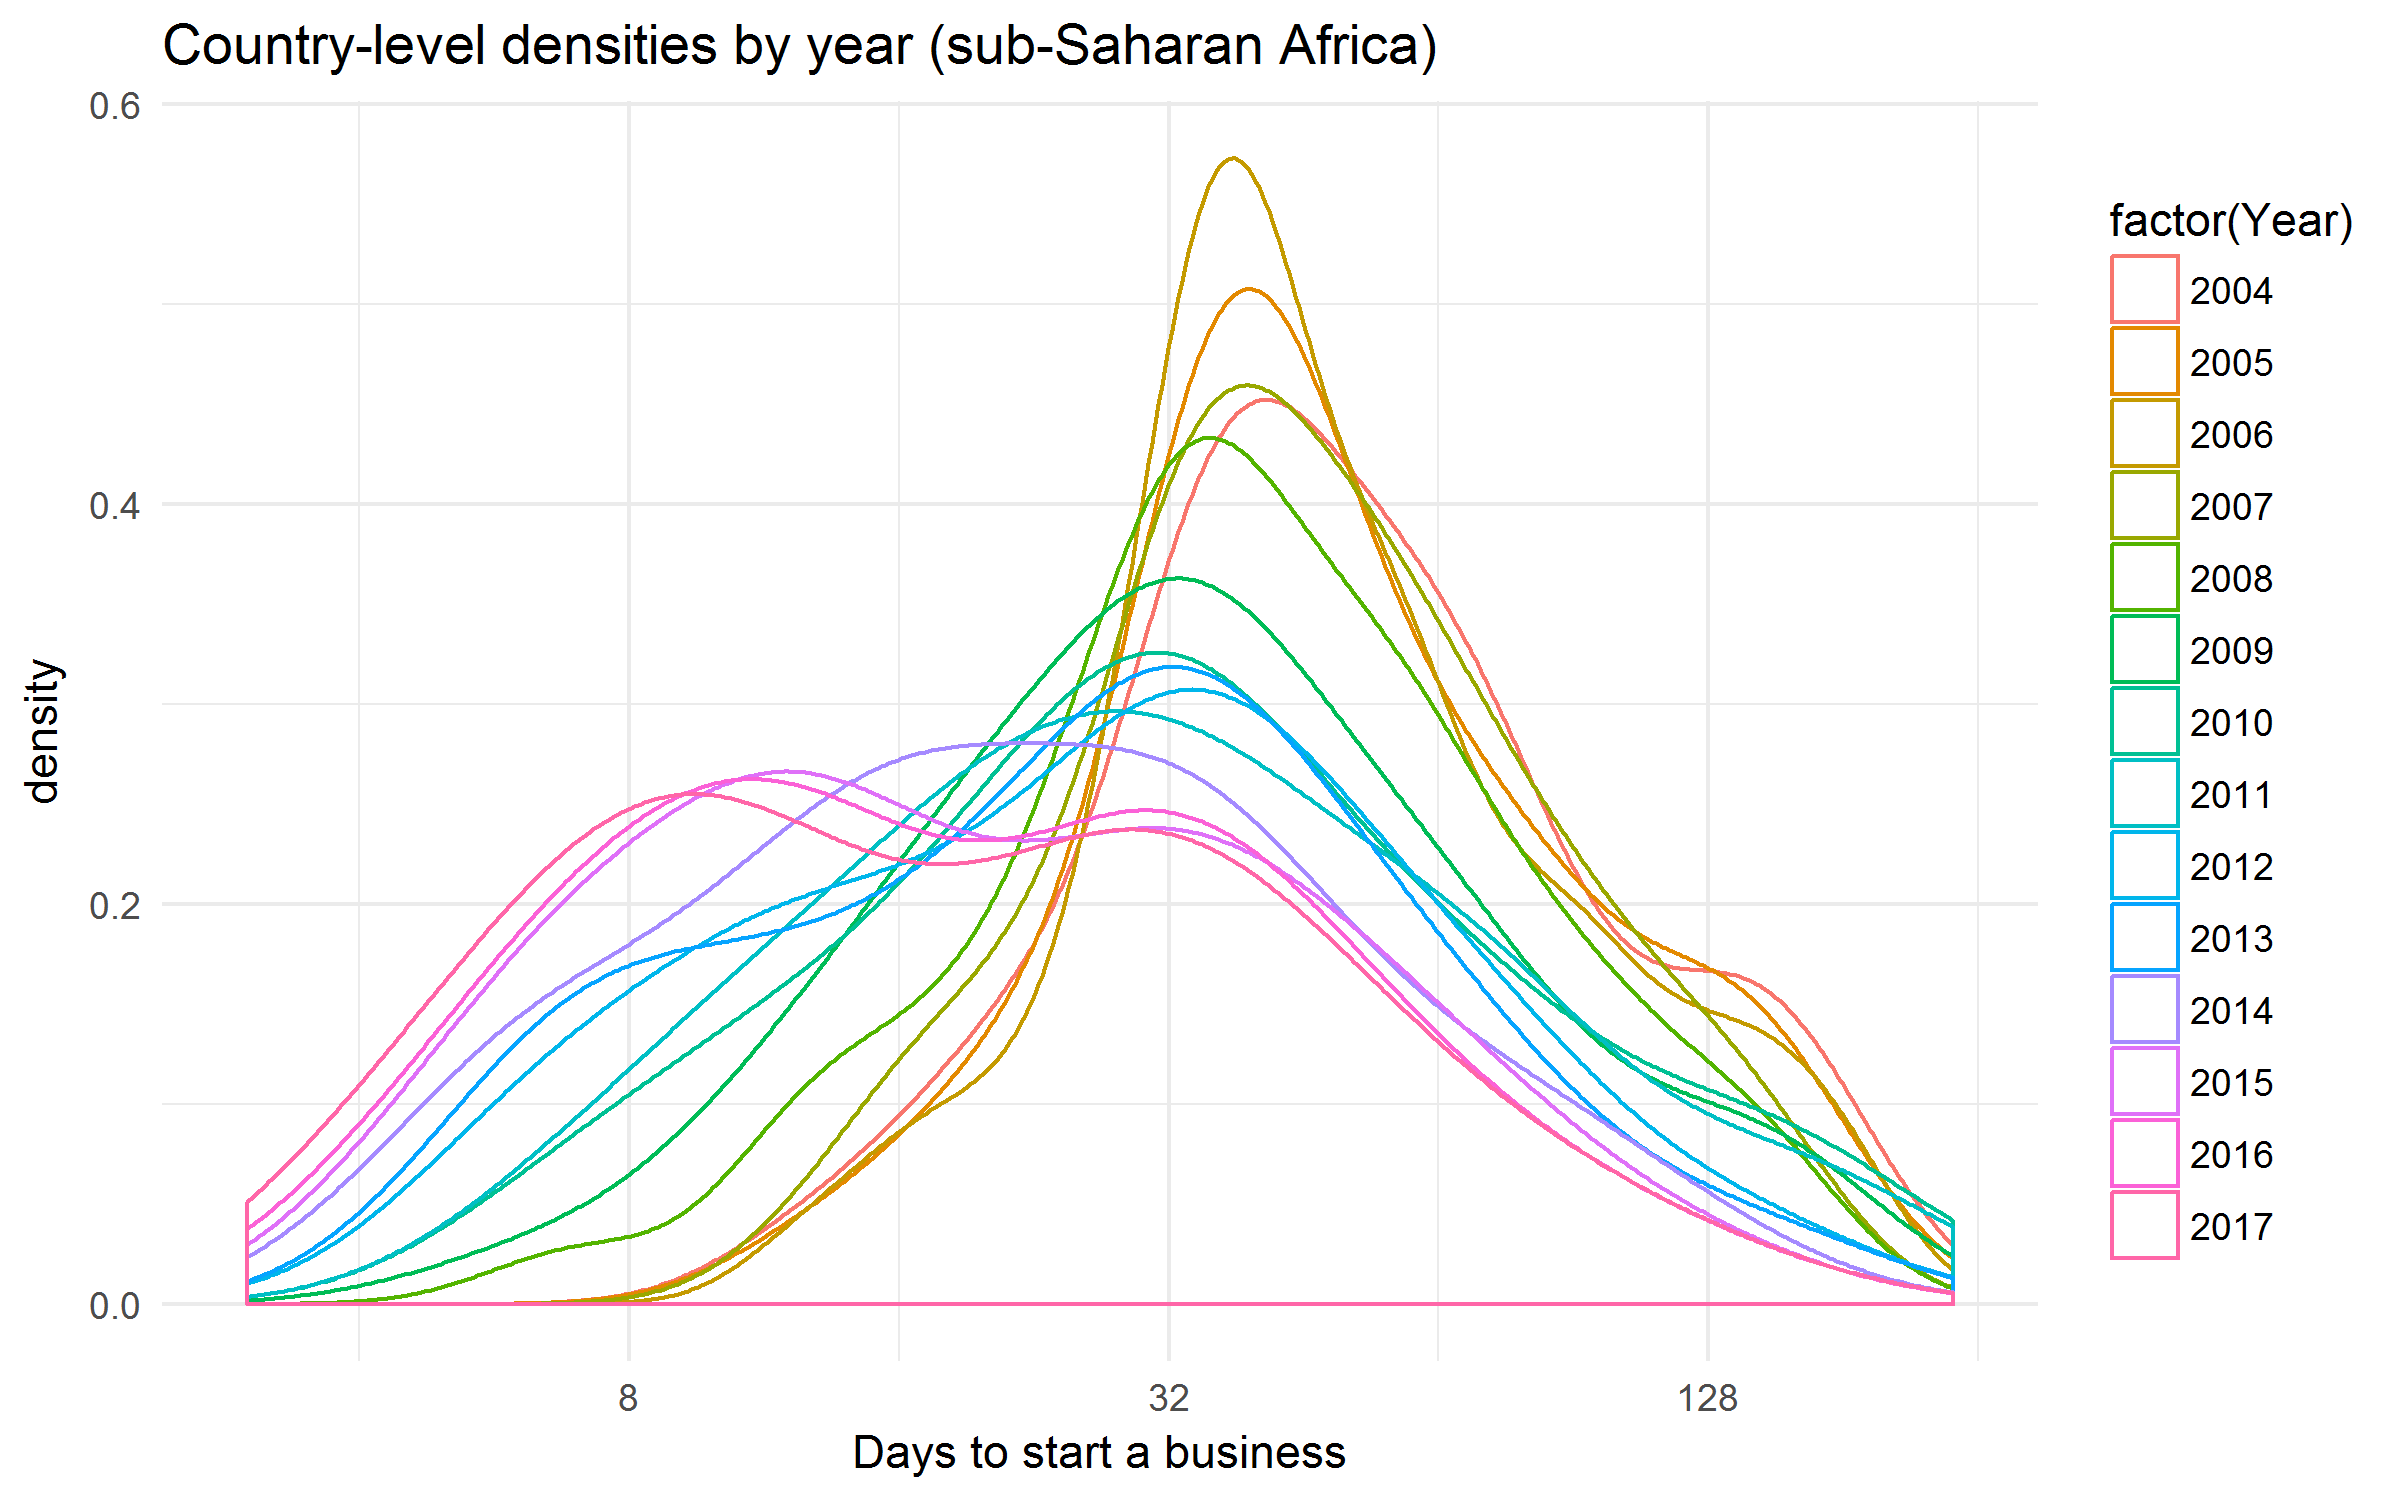 Days to start a business in sub-Saharan Africa over time